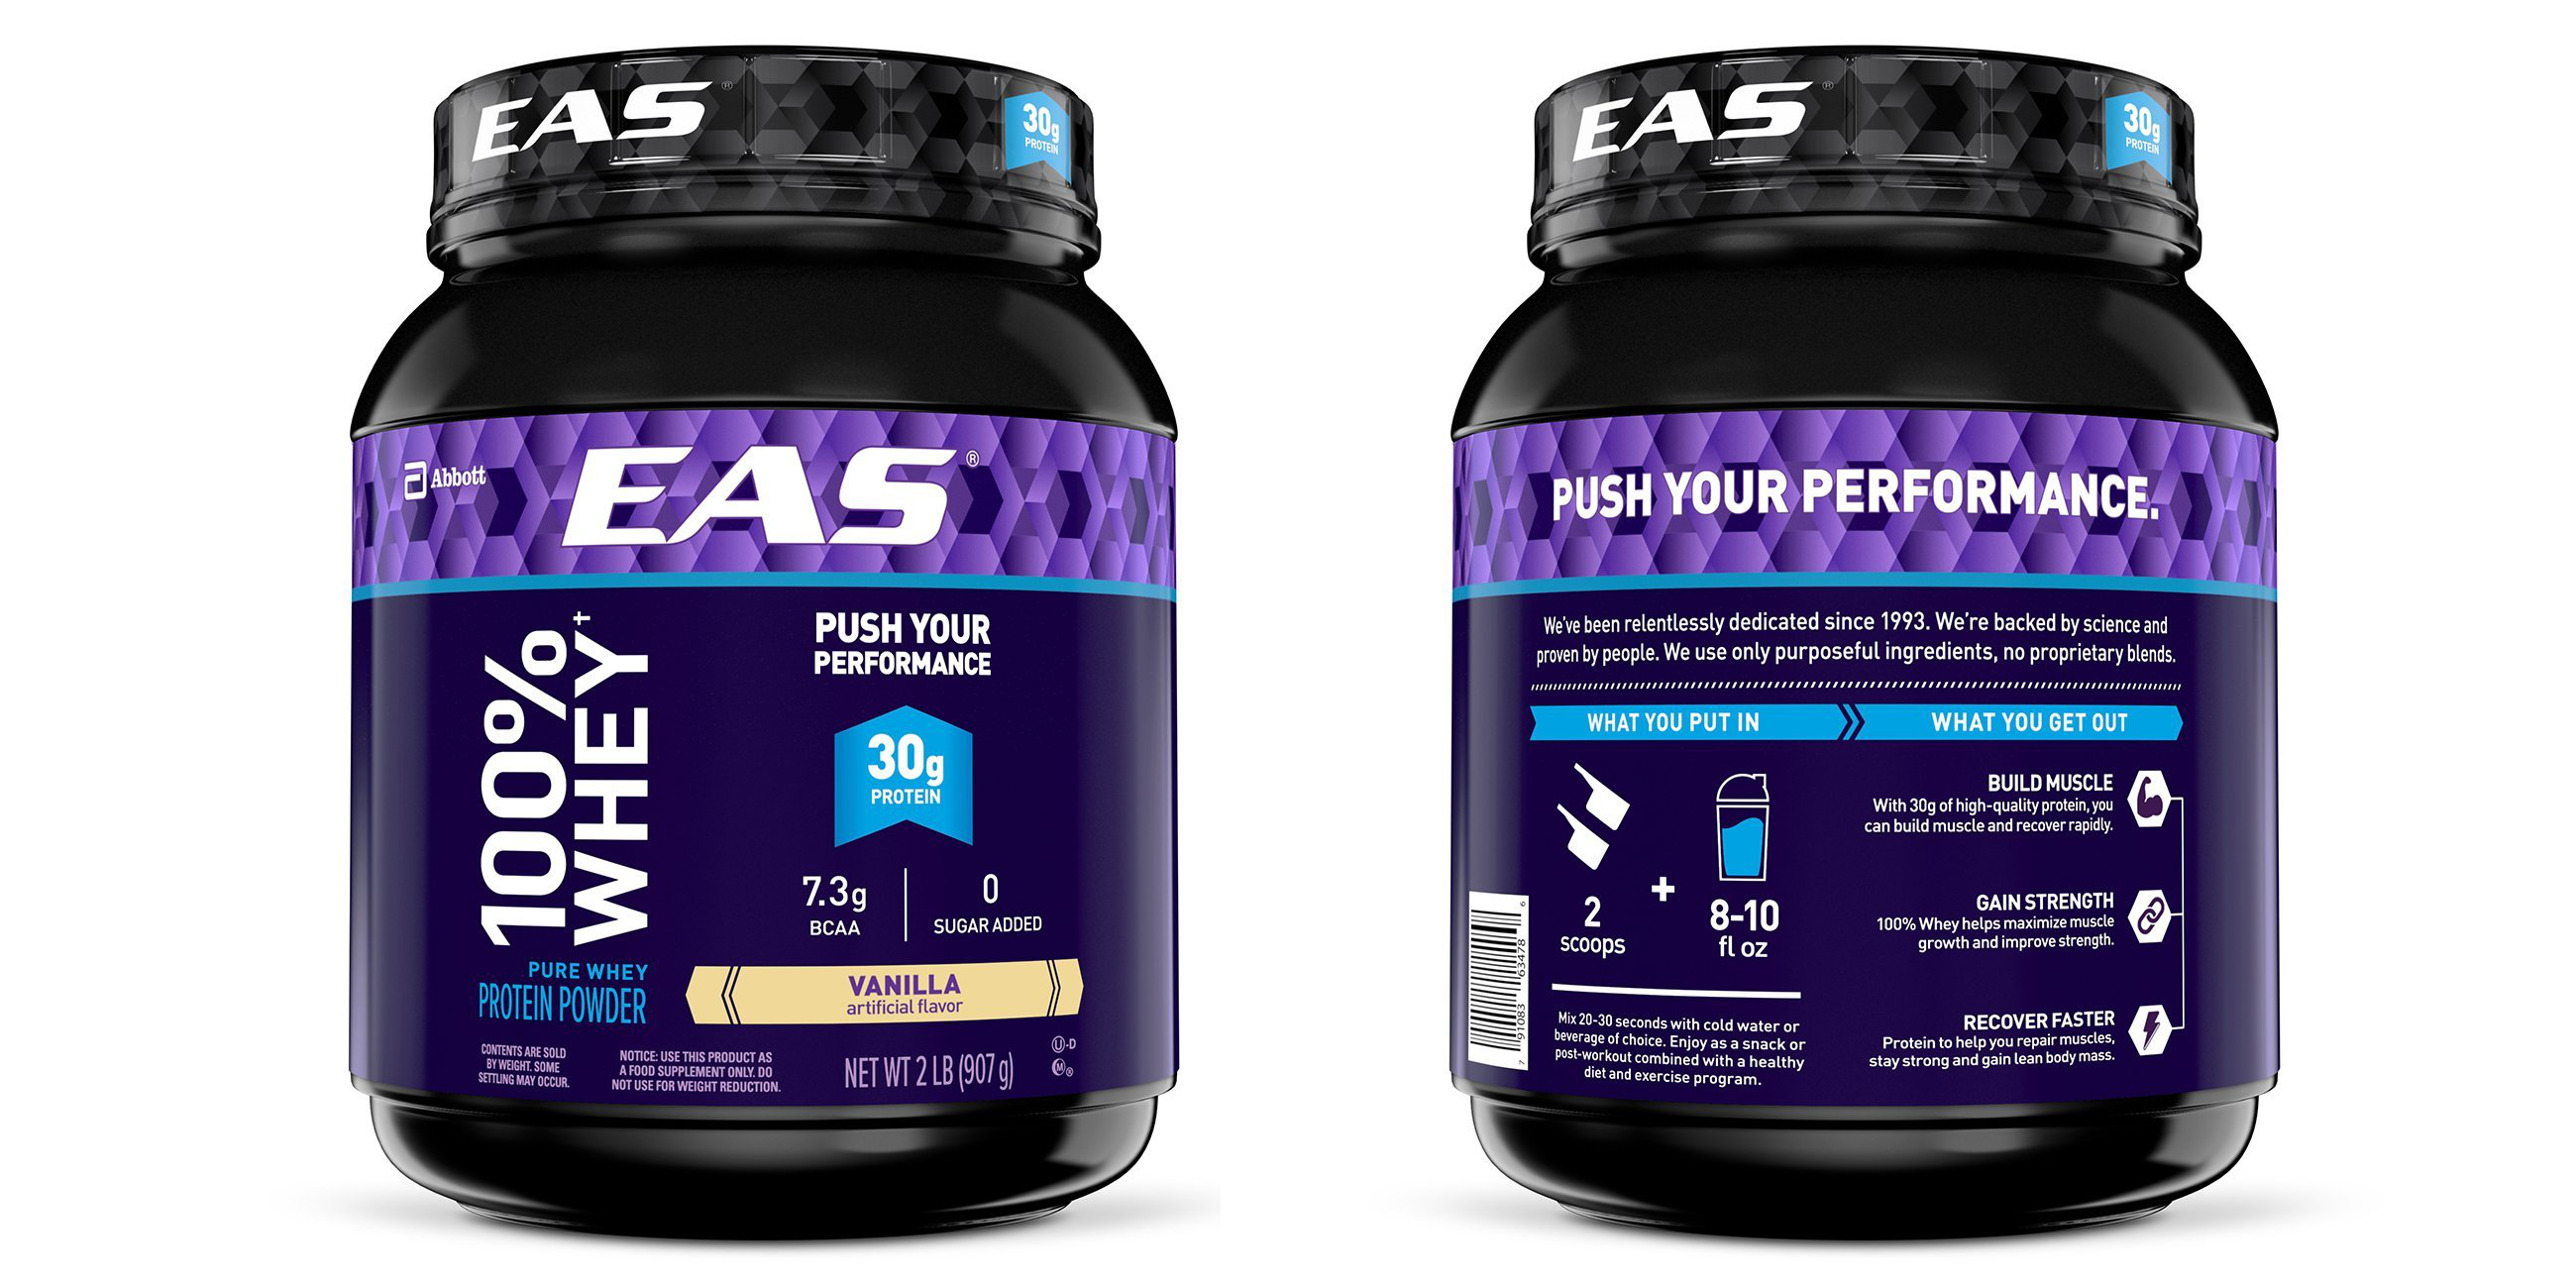 eas-my-protein